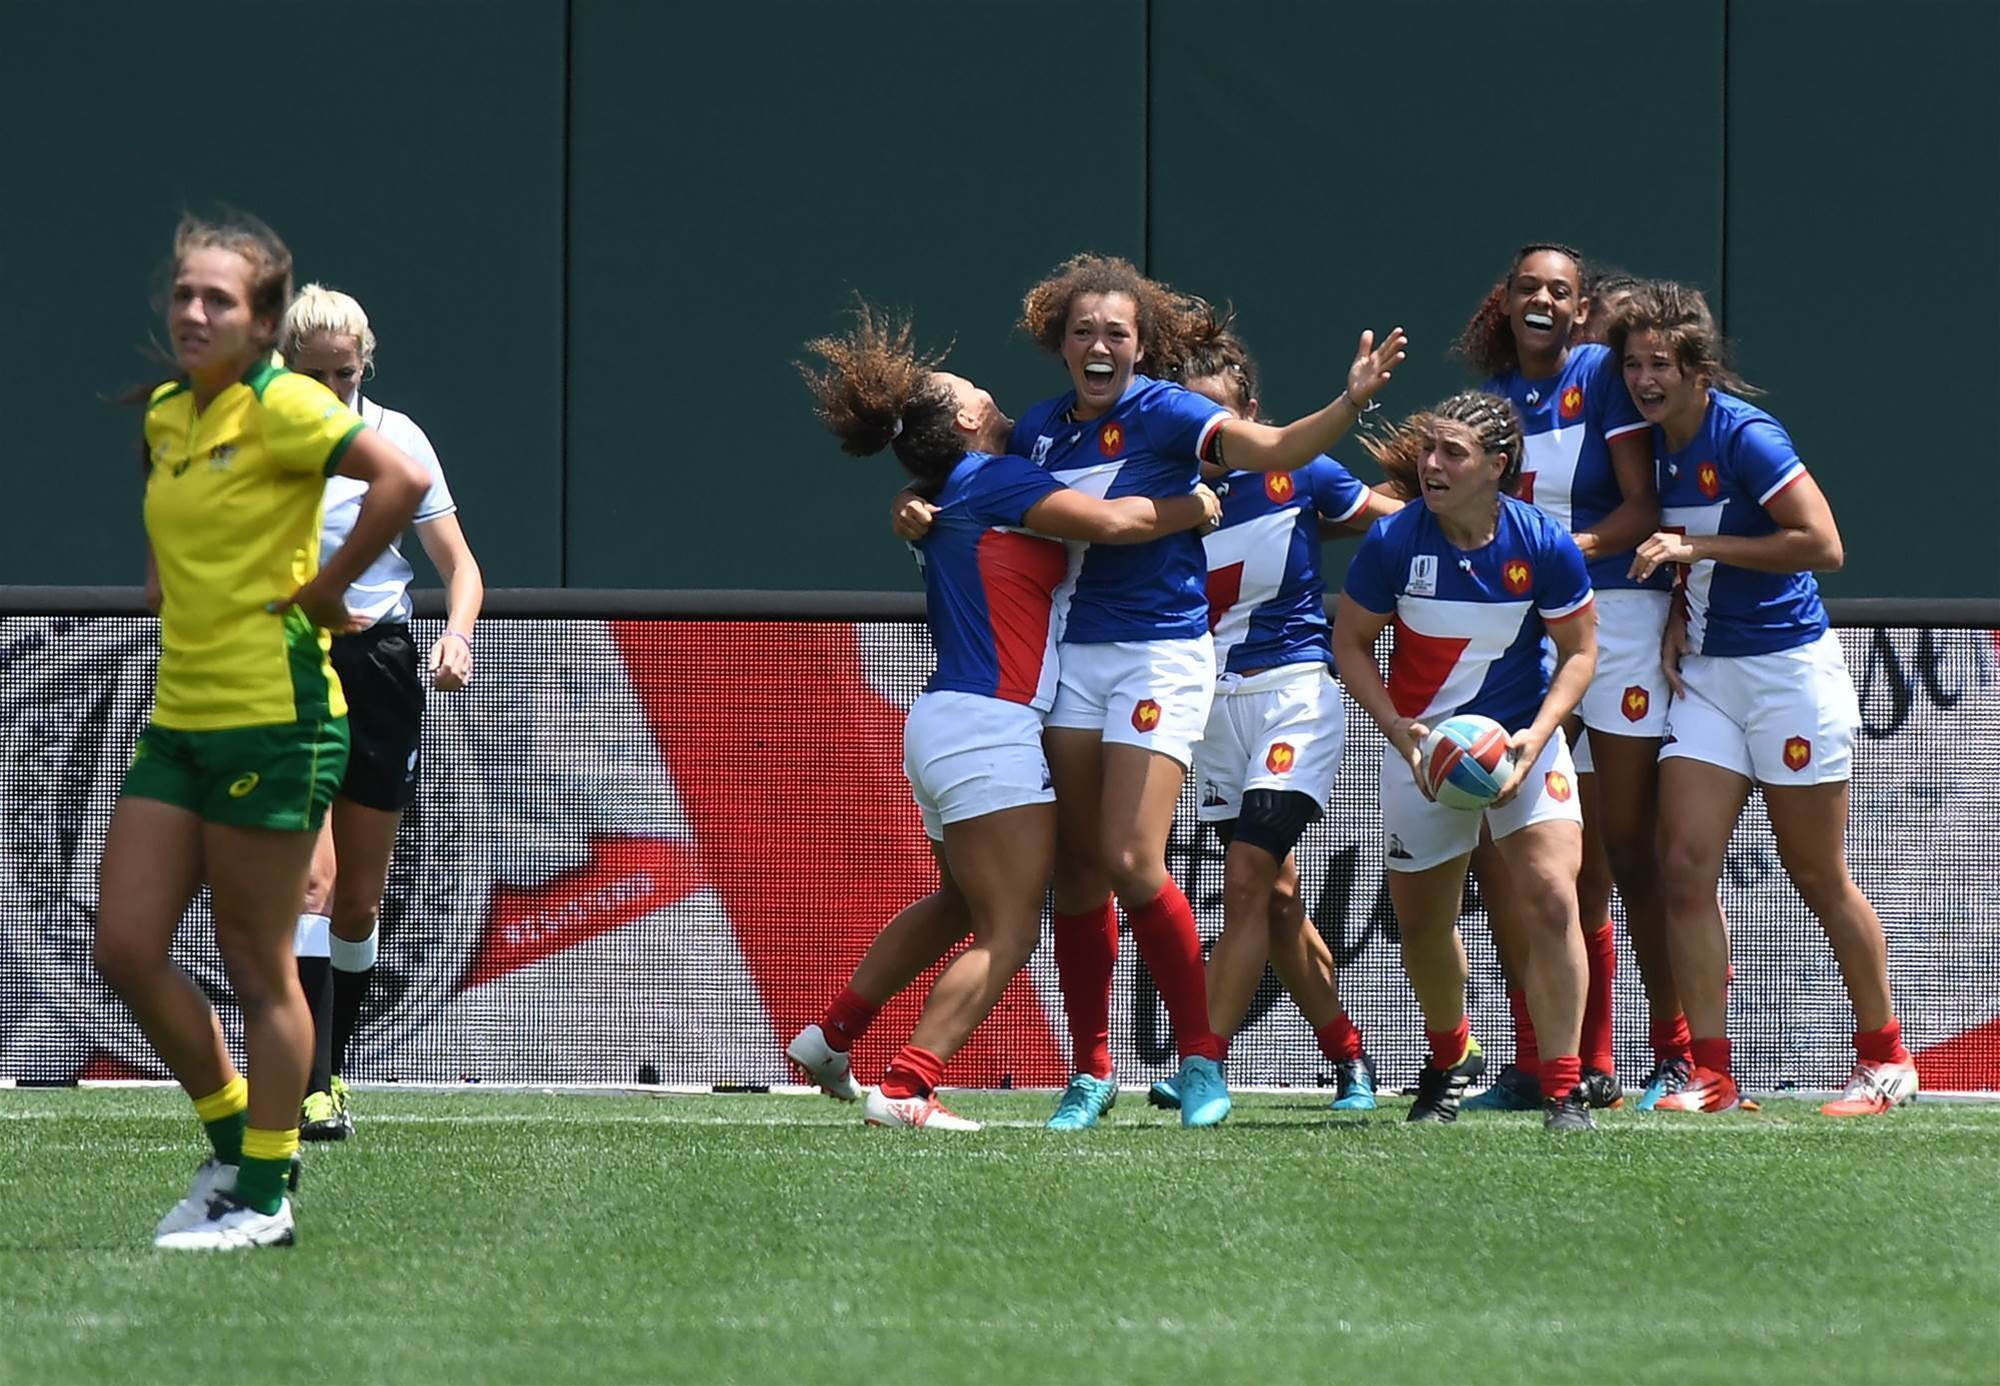 Aussie 7s into bronze medal match